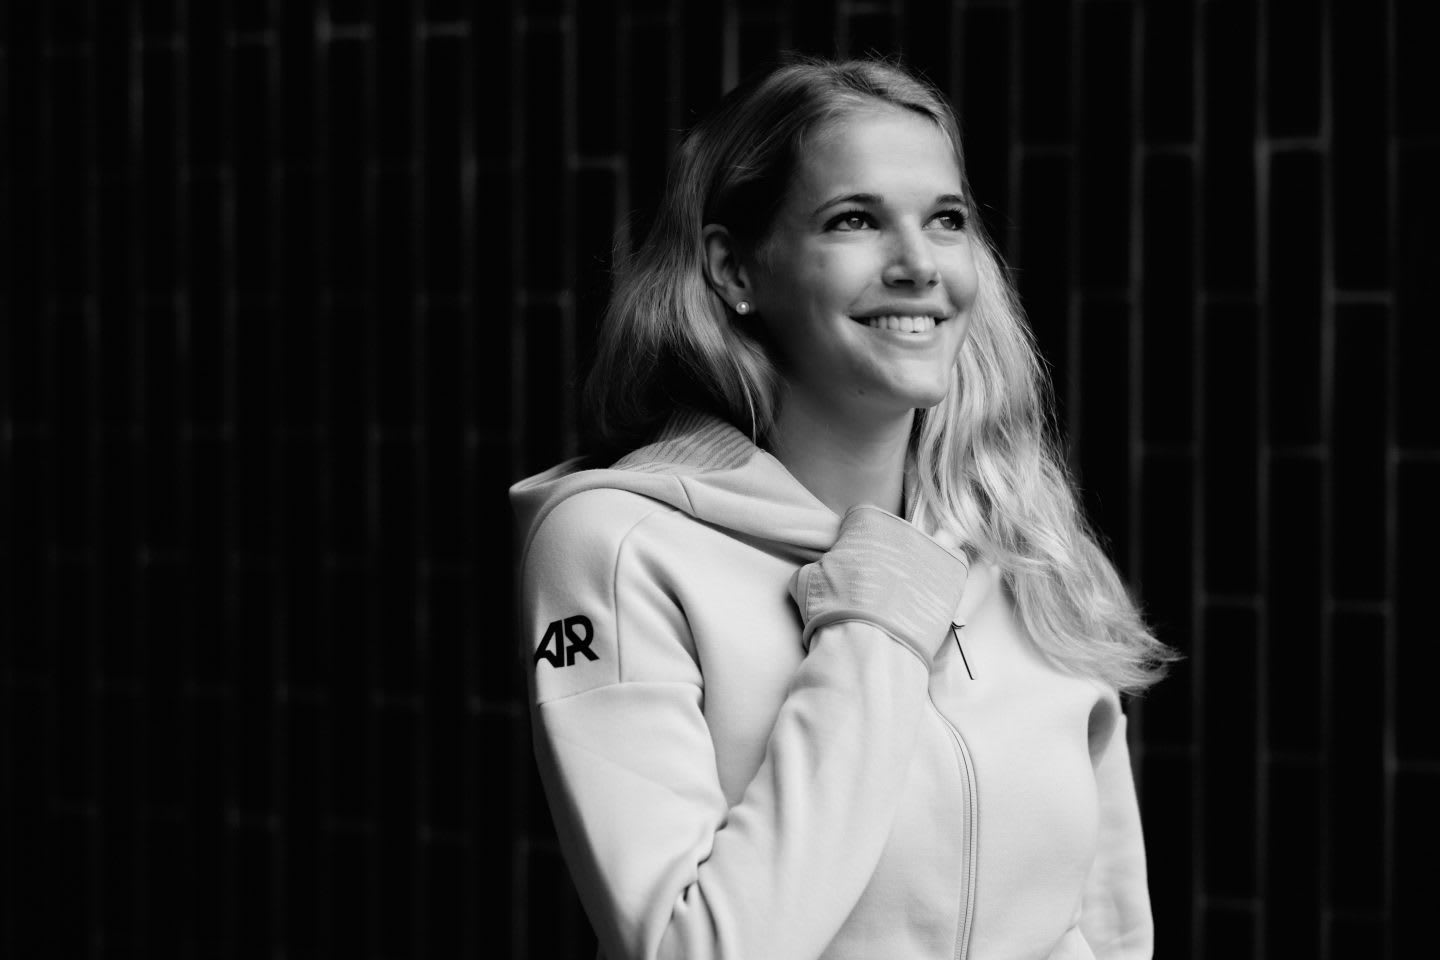 Back and white picture, girl smiling in front of a black background and wearing an adidas Runners track top, Simone Luder_adidas Runners_GamePlan A